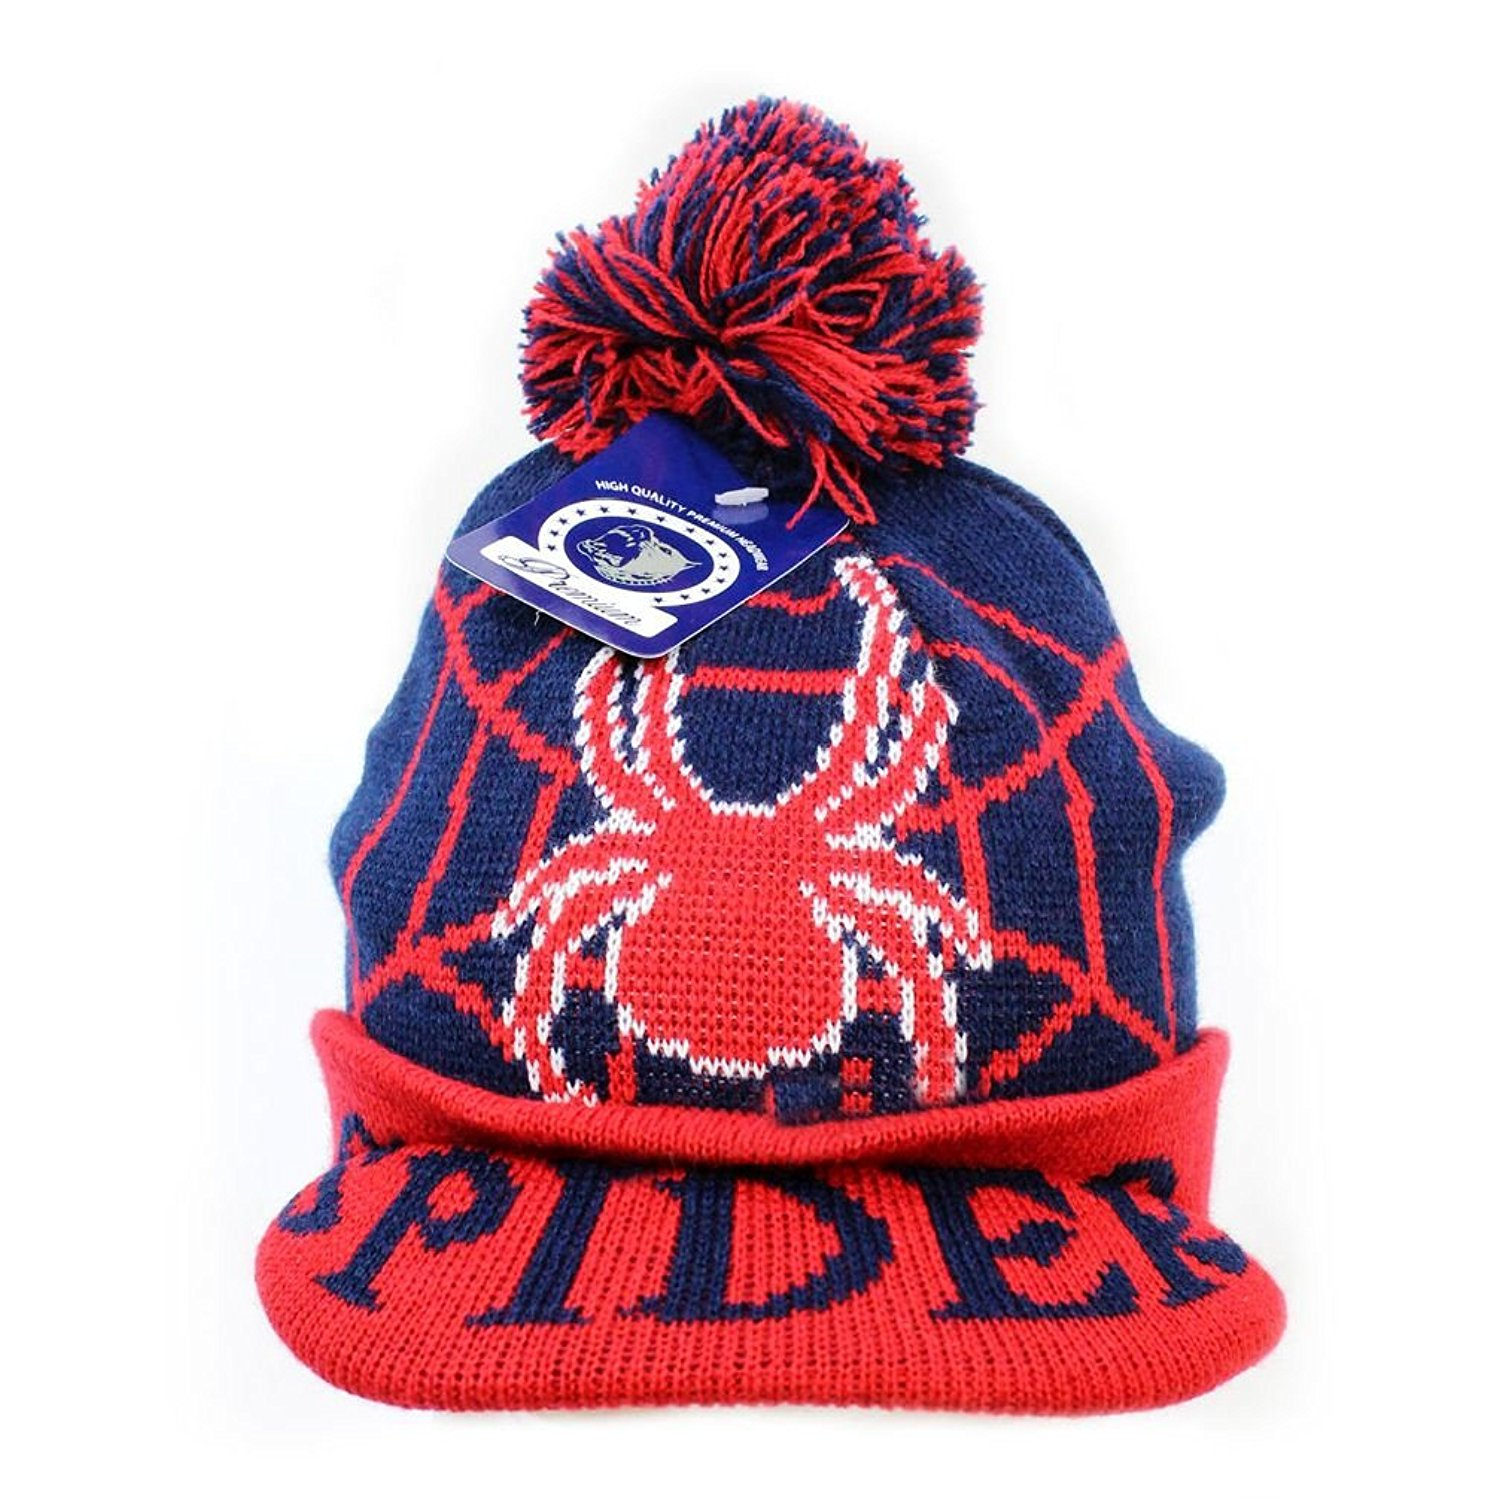 ed8a31e95ba Spider Boys Girls Kids Pom Pom Visor Beanie Hat Winter Knit Ski Cap Skull  Cap